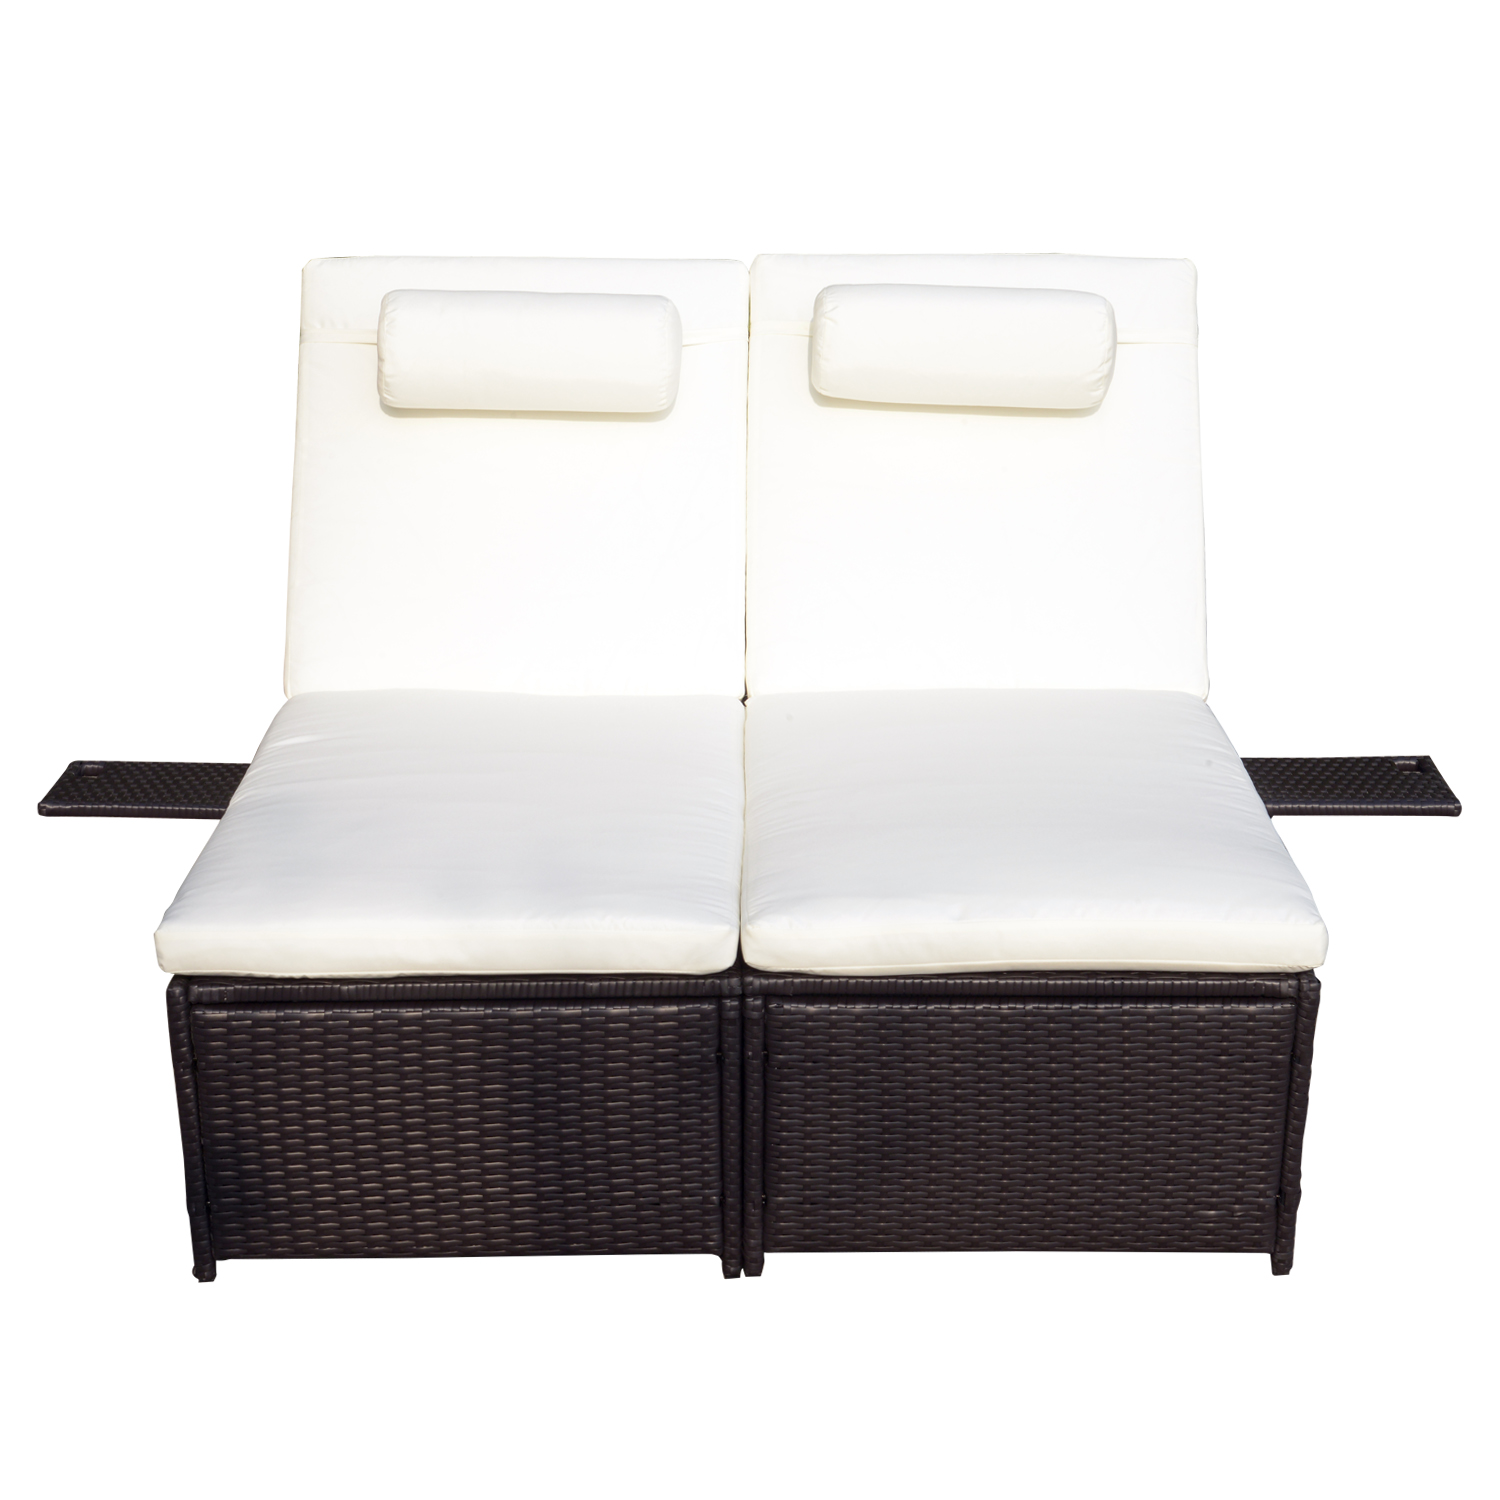 sale white of couch double chairs wicker indoor elizabeth medium affordable size patio modern chaise outdoor pool lounge lounges